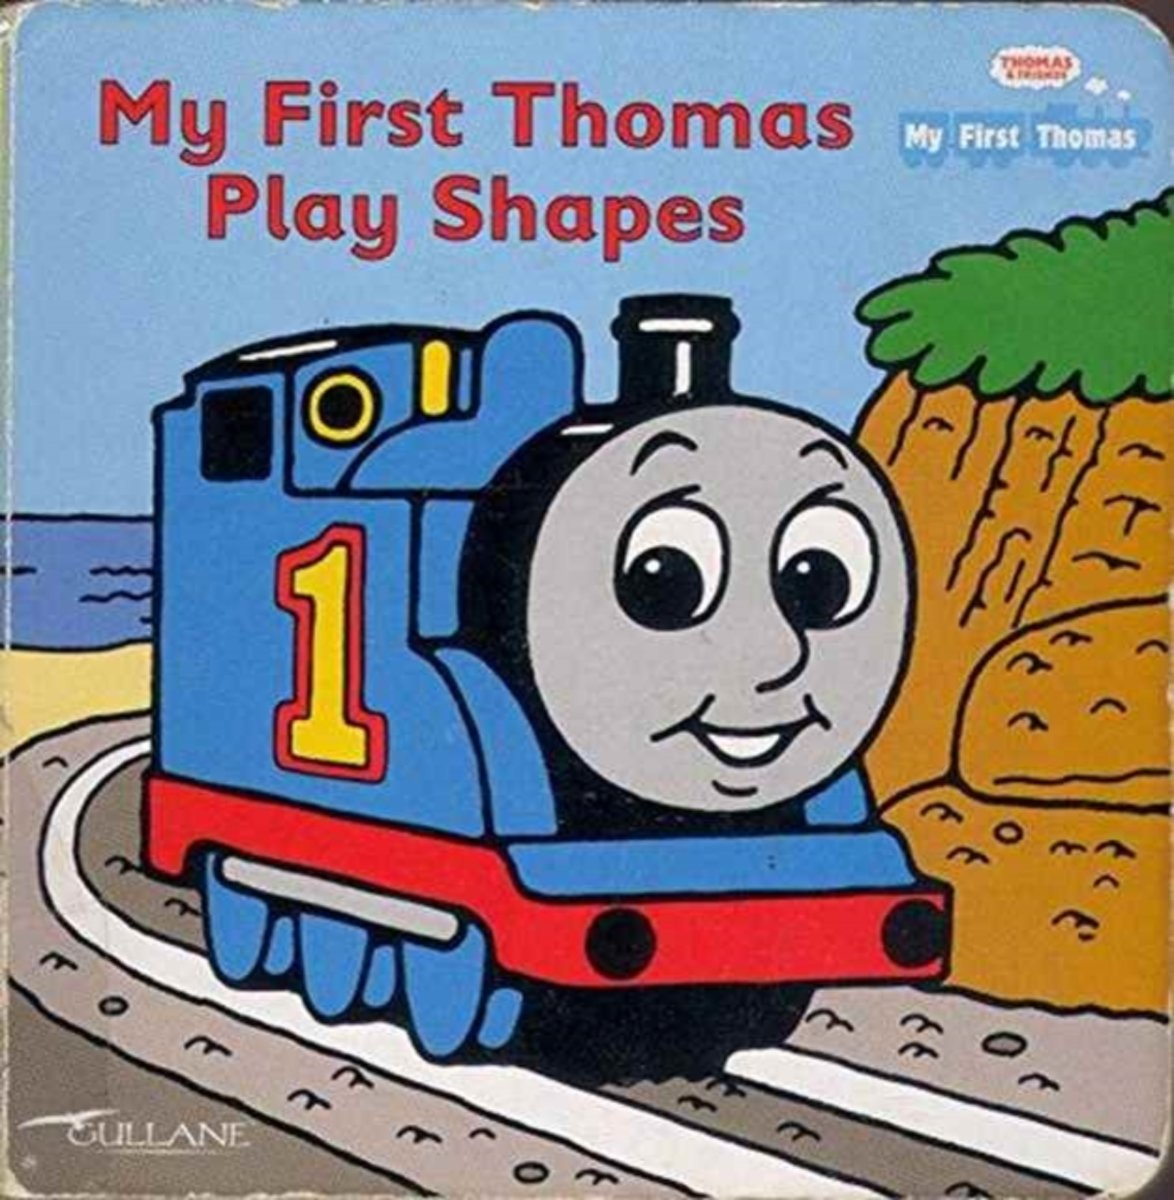 My First Thomas Play Shapes